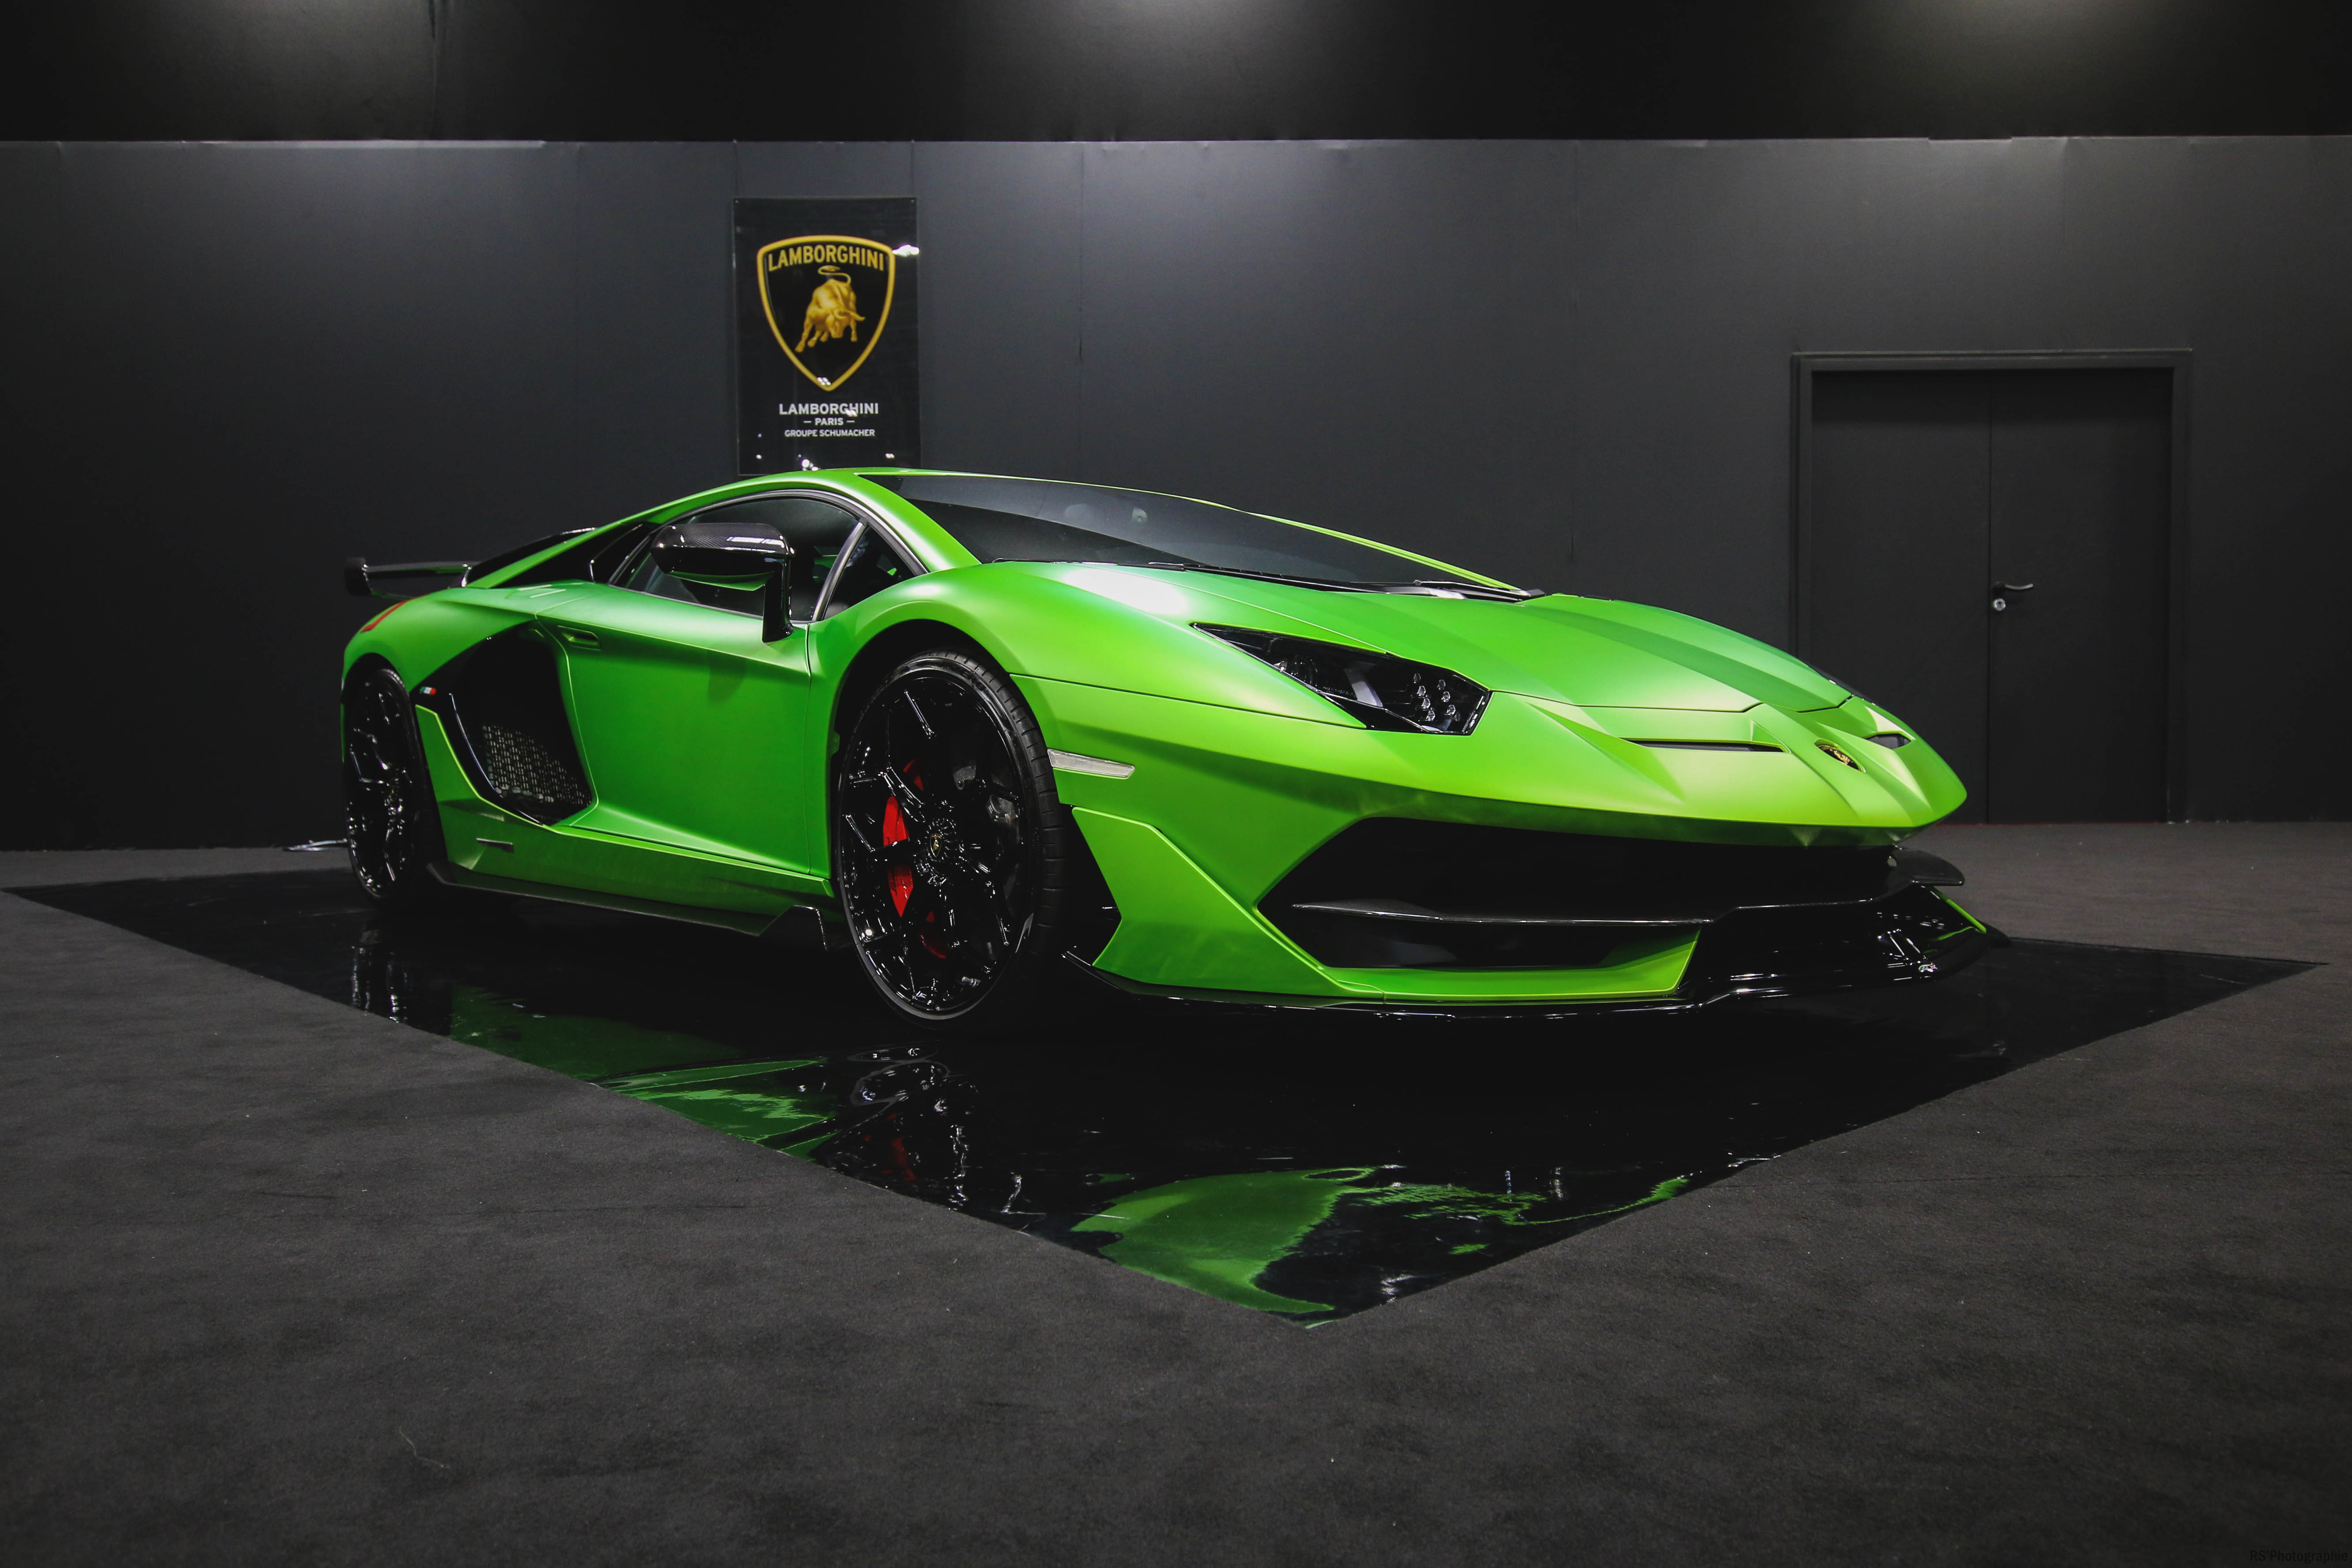 Lamborghini Aventador SVJ - front side-face - Paris Motor Show - 2018 - Mondial Auto - photo by Arnaud Demasier RS Photographie